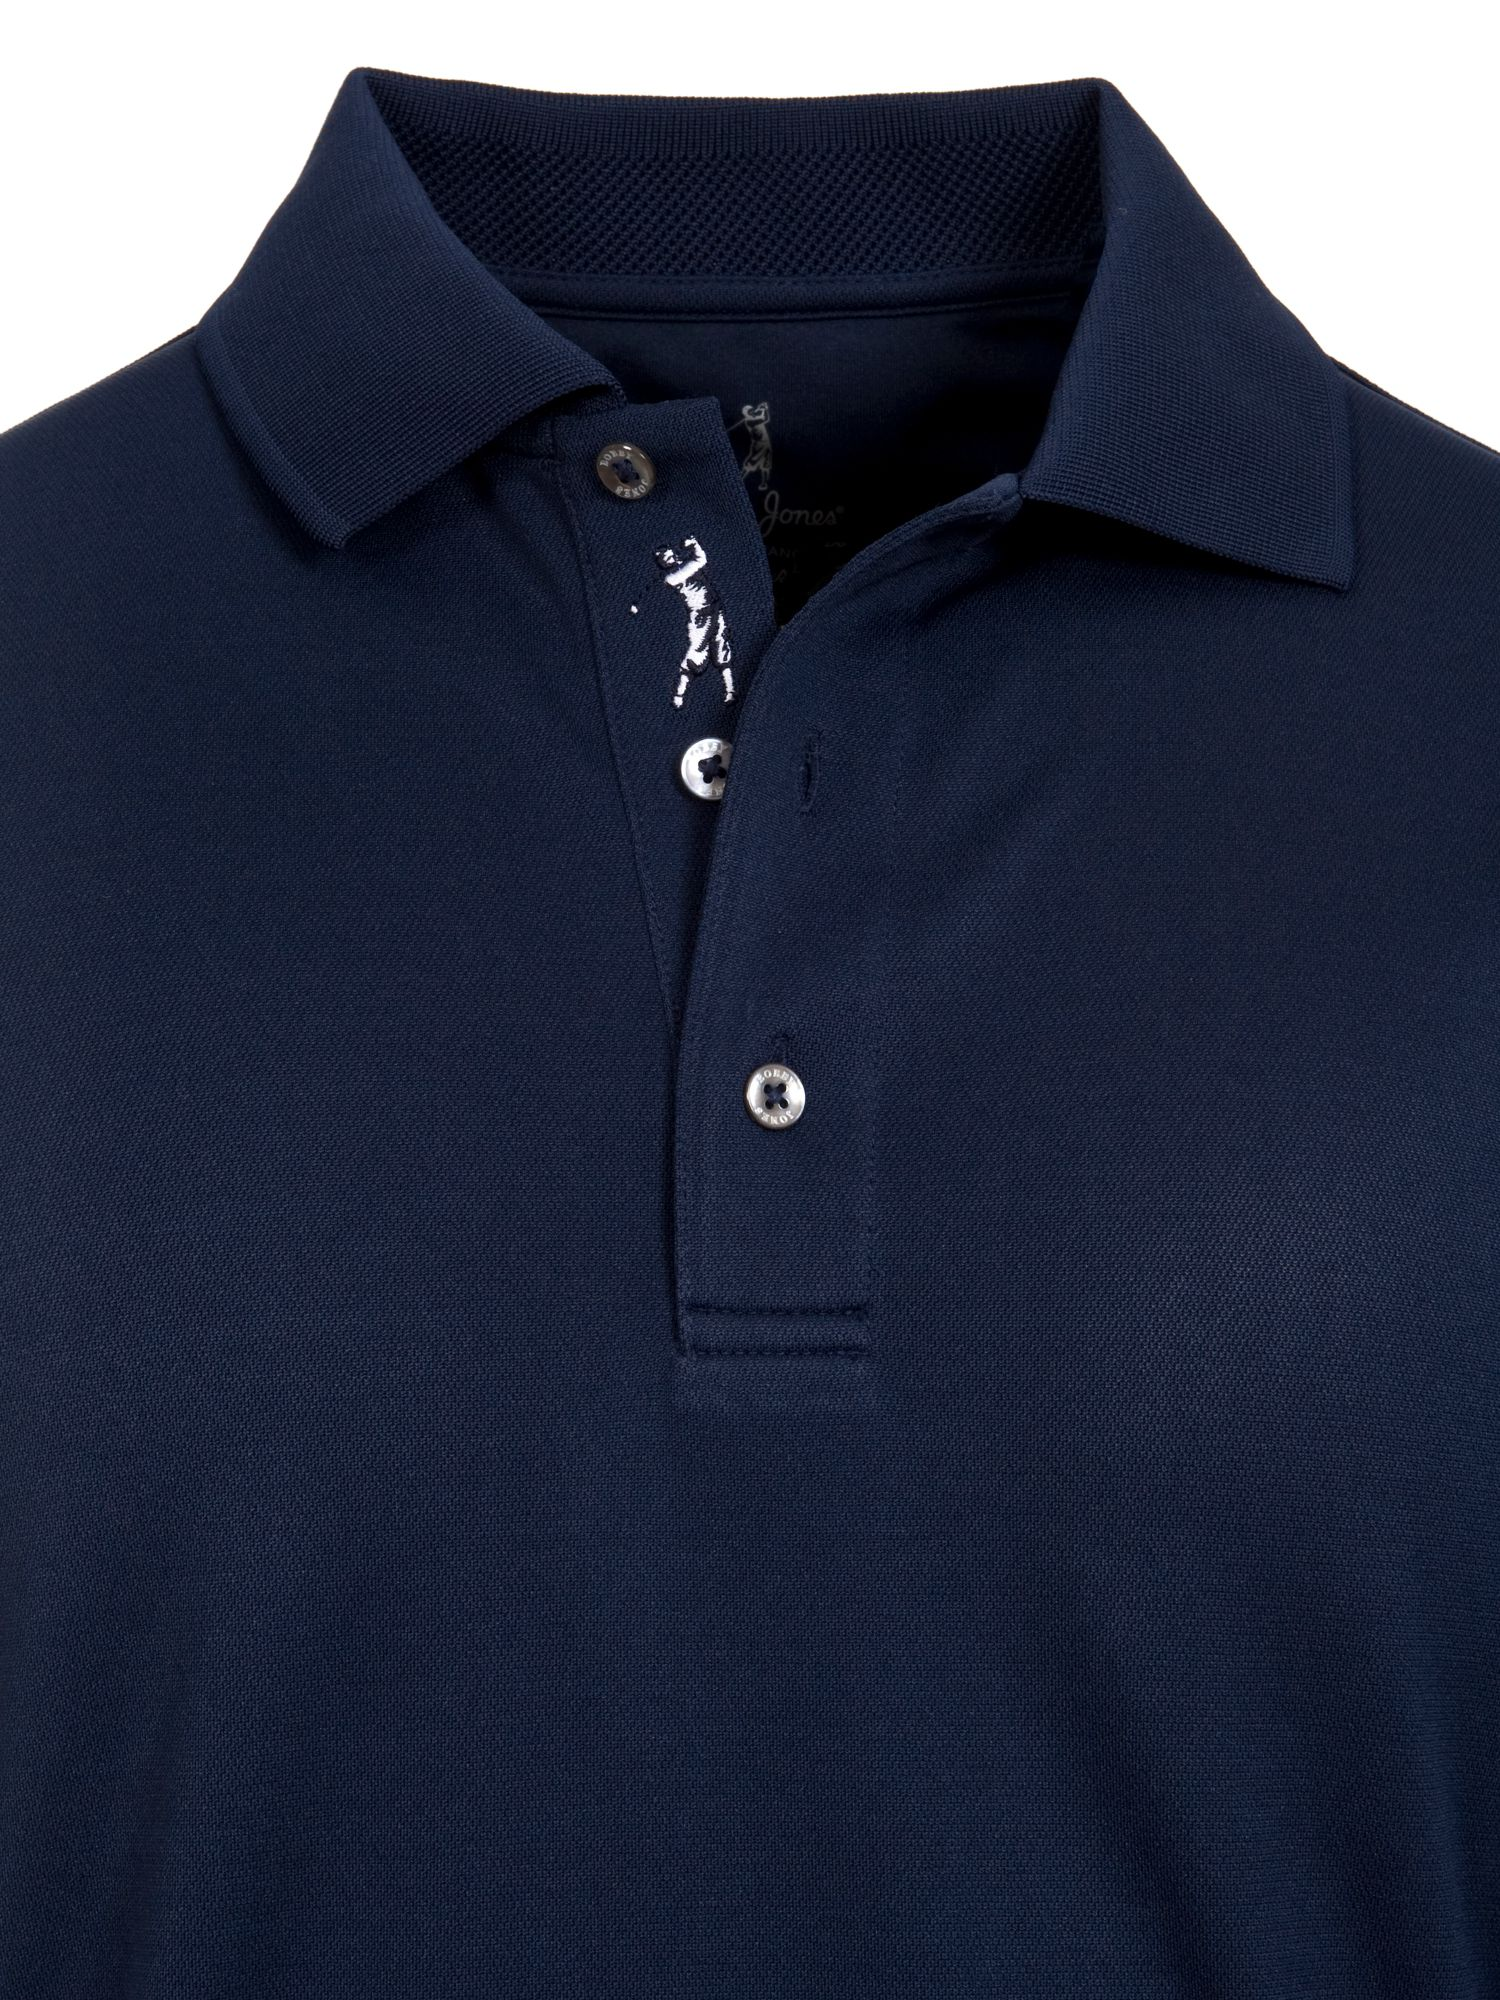 Xh20 coolplus solid eyelet polo